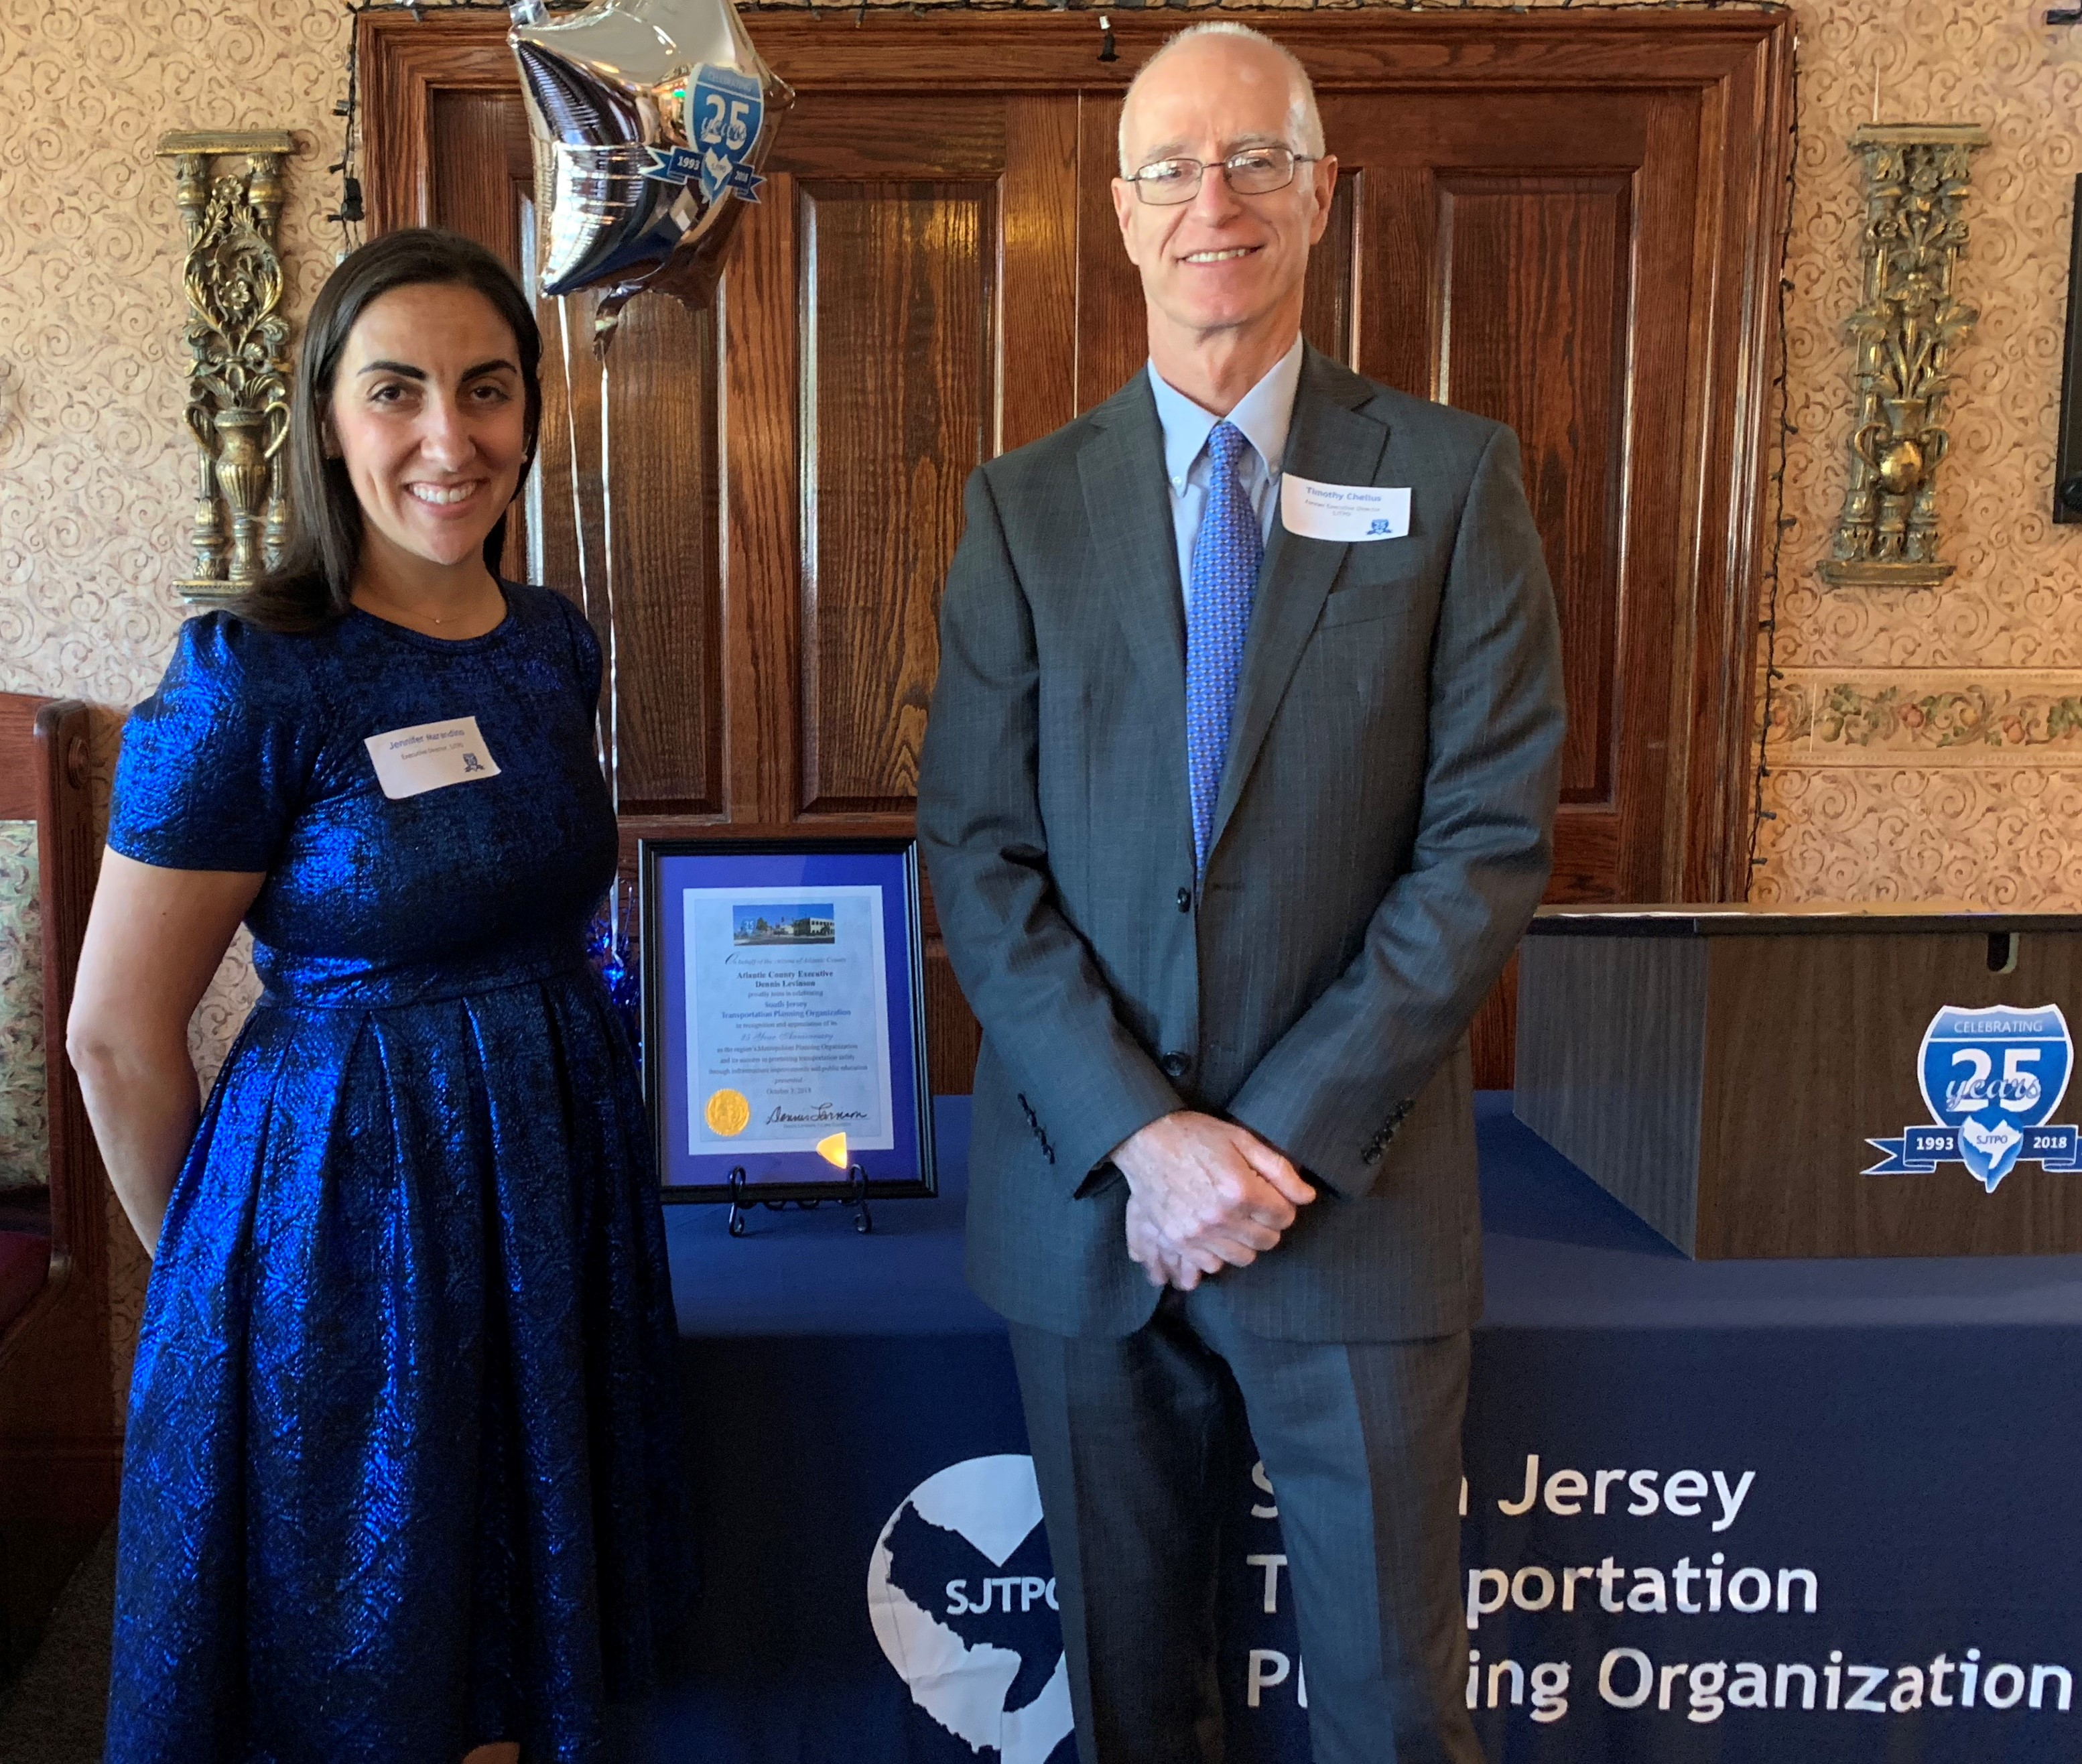 25 Years, 2 Executive Directors, 1 Mission for South Jersey's Transportation System